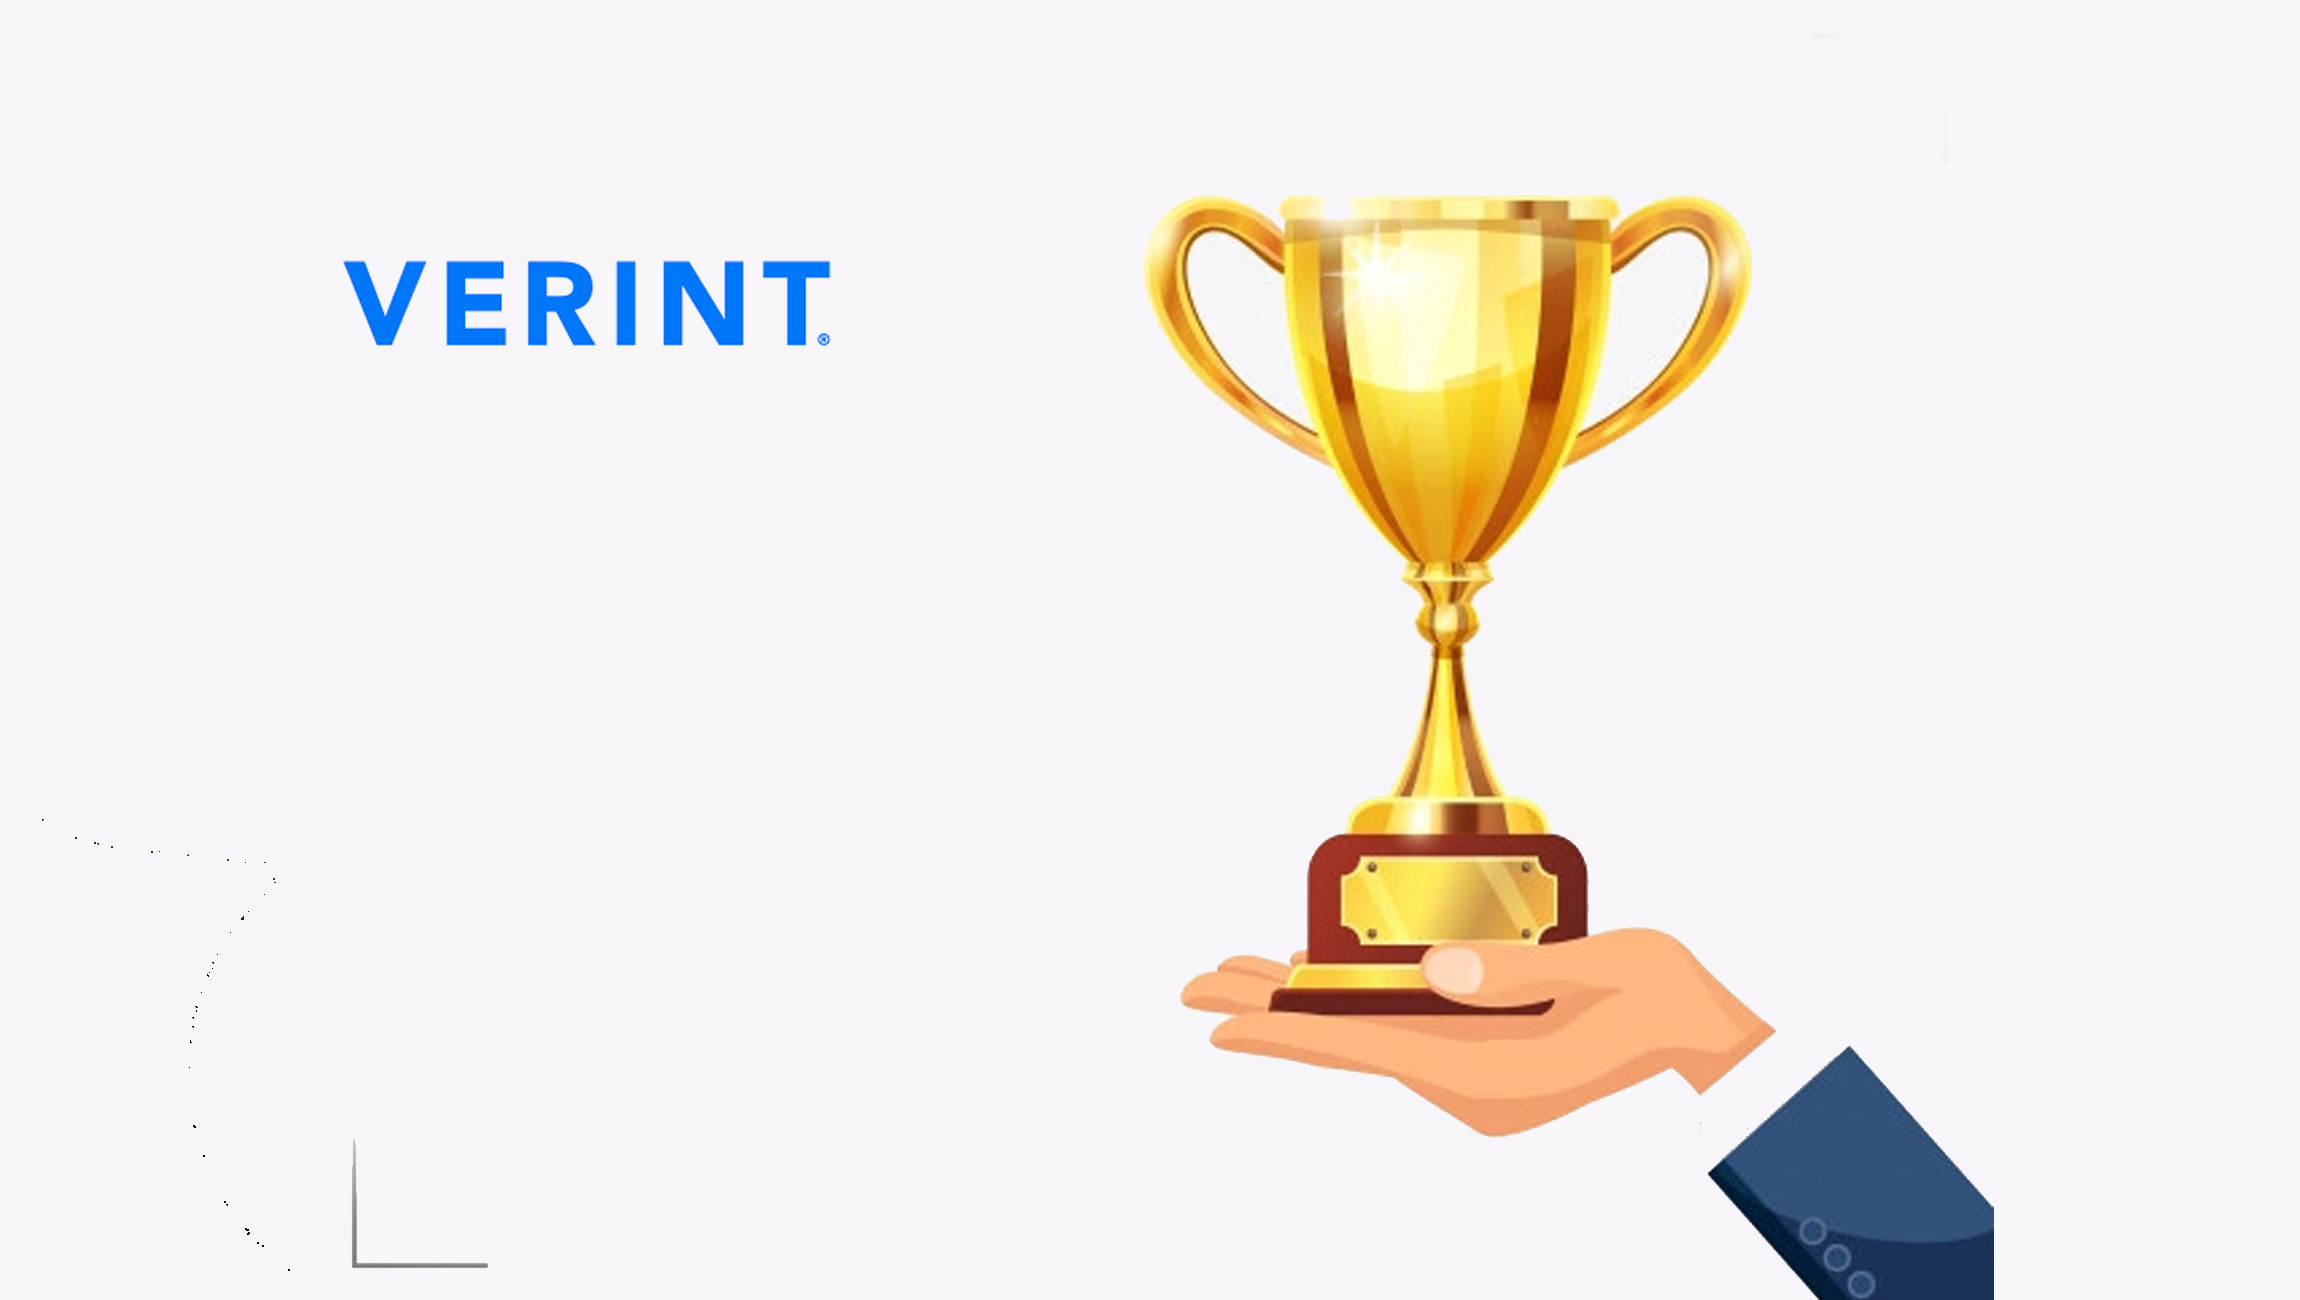 Verint Wins Artificial Intelligence Excellence Award in Customer Engagement